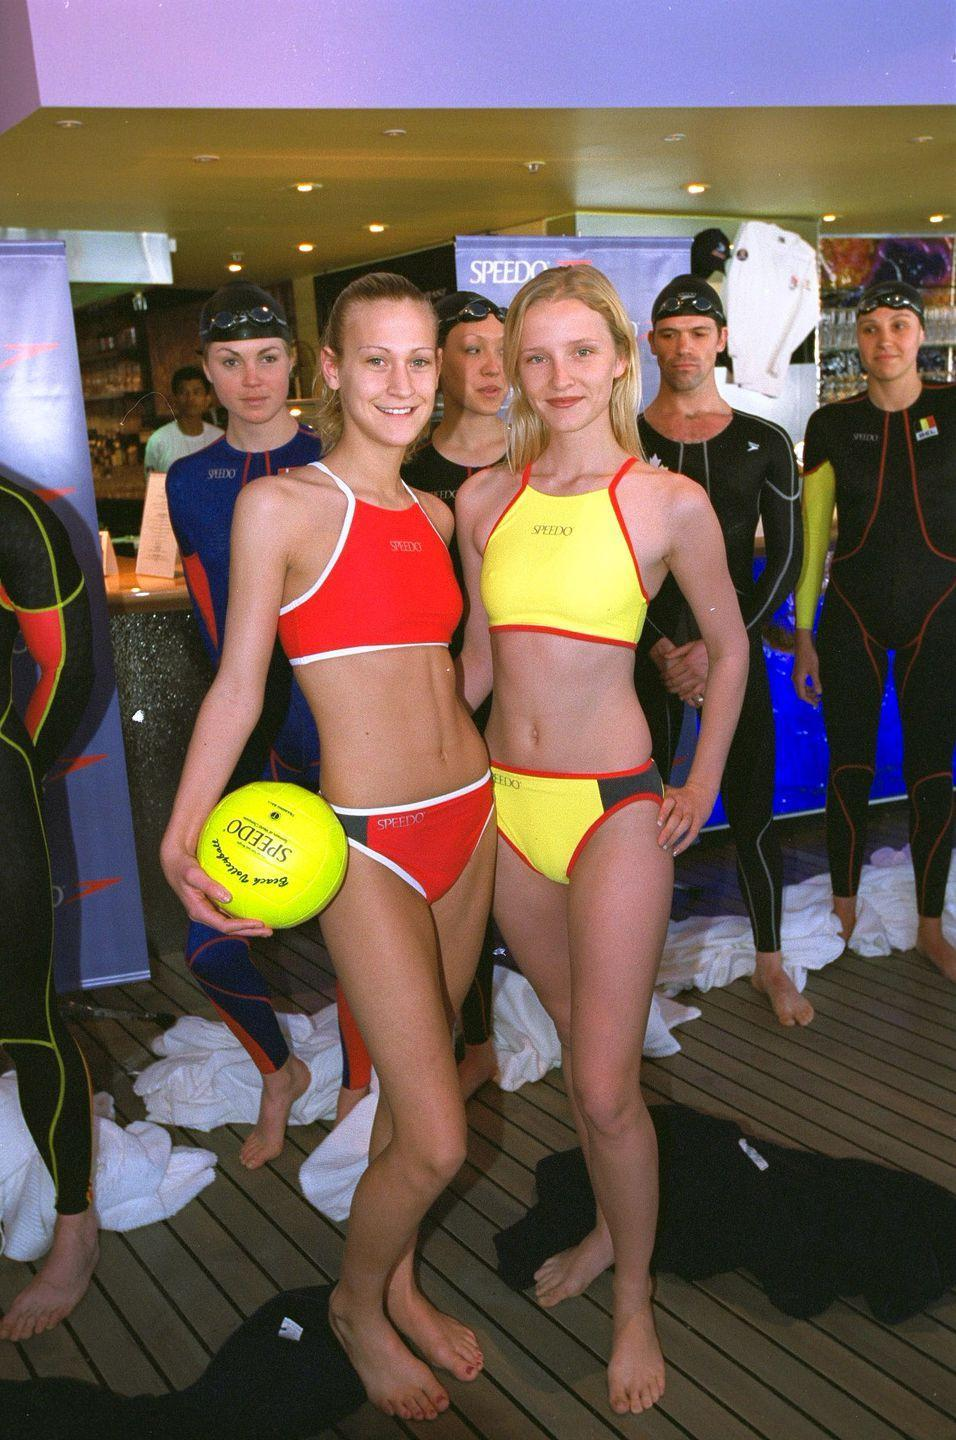 <p>In 2000, sporty styles, particularly from the athletic swimwear brand Speedo, were on top.</p>